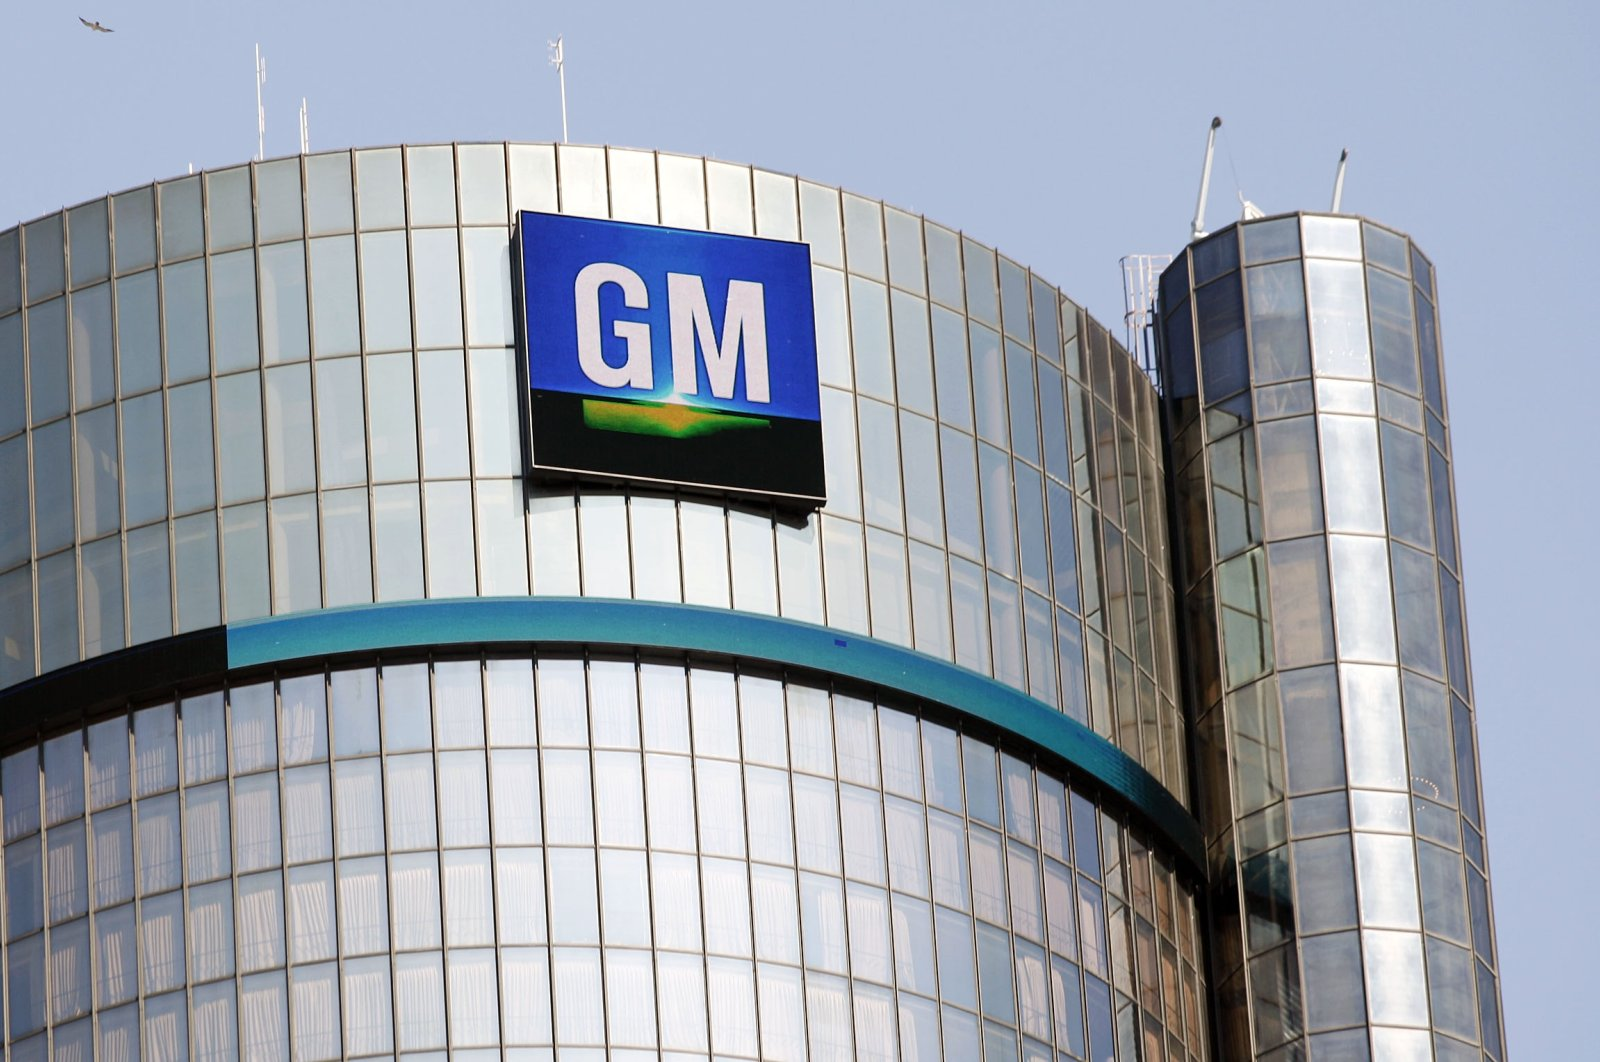 The General Motors logo on the world headquarters building is seen in Detroit, Michigan, U.S., Sept. 17, 2015. (Getty Images / AFP Photo)